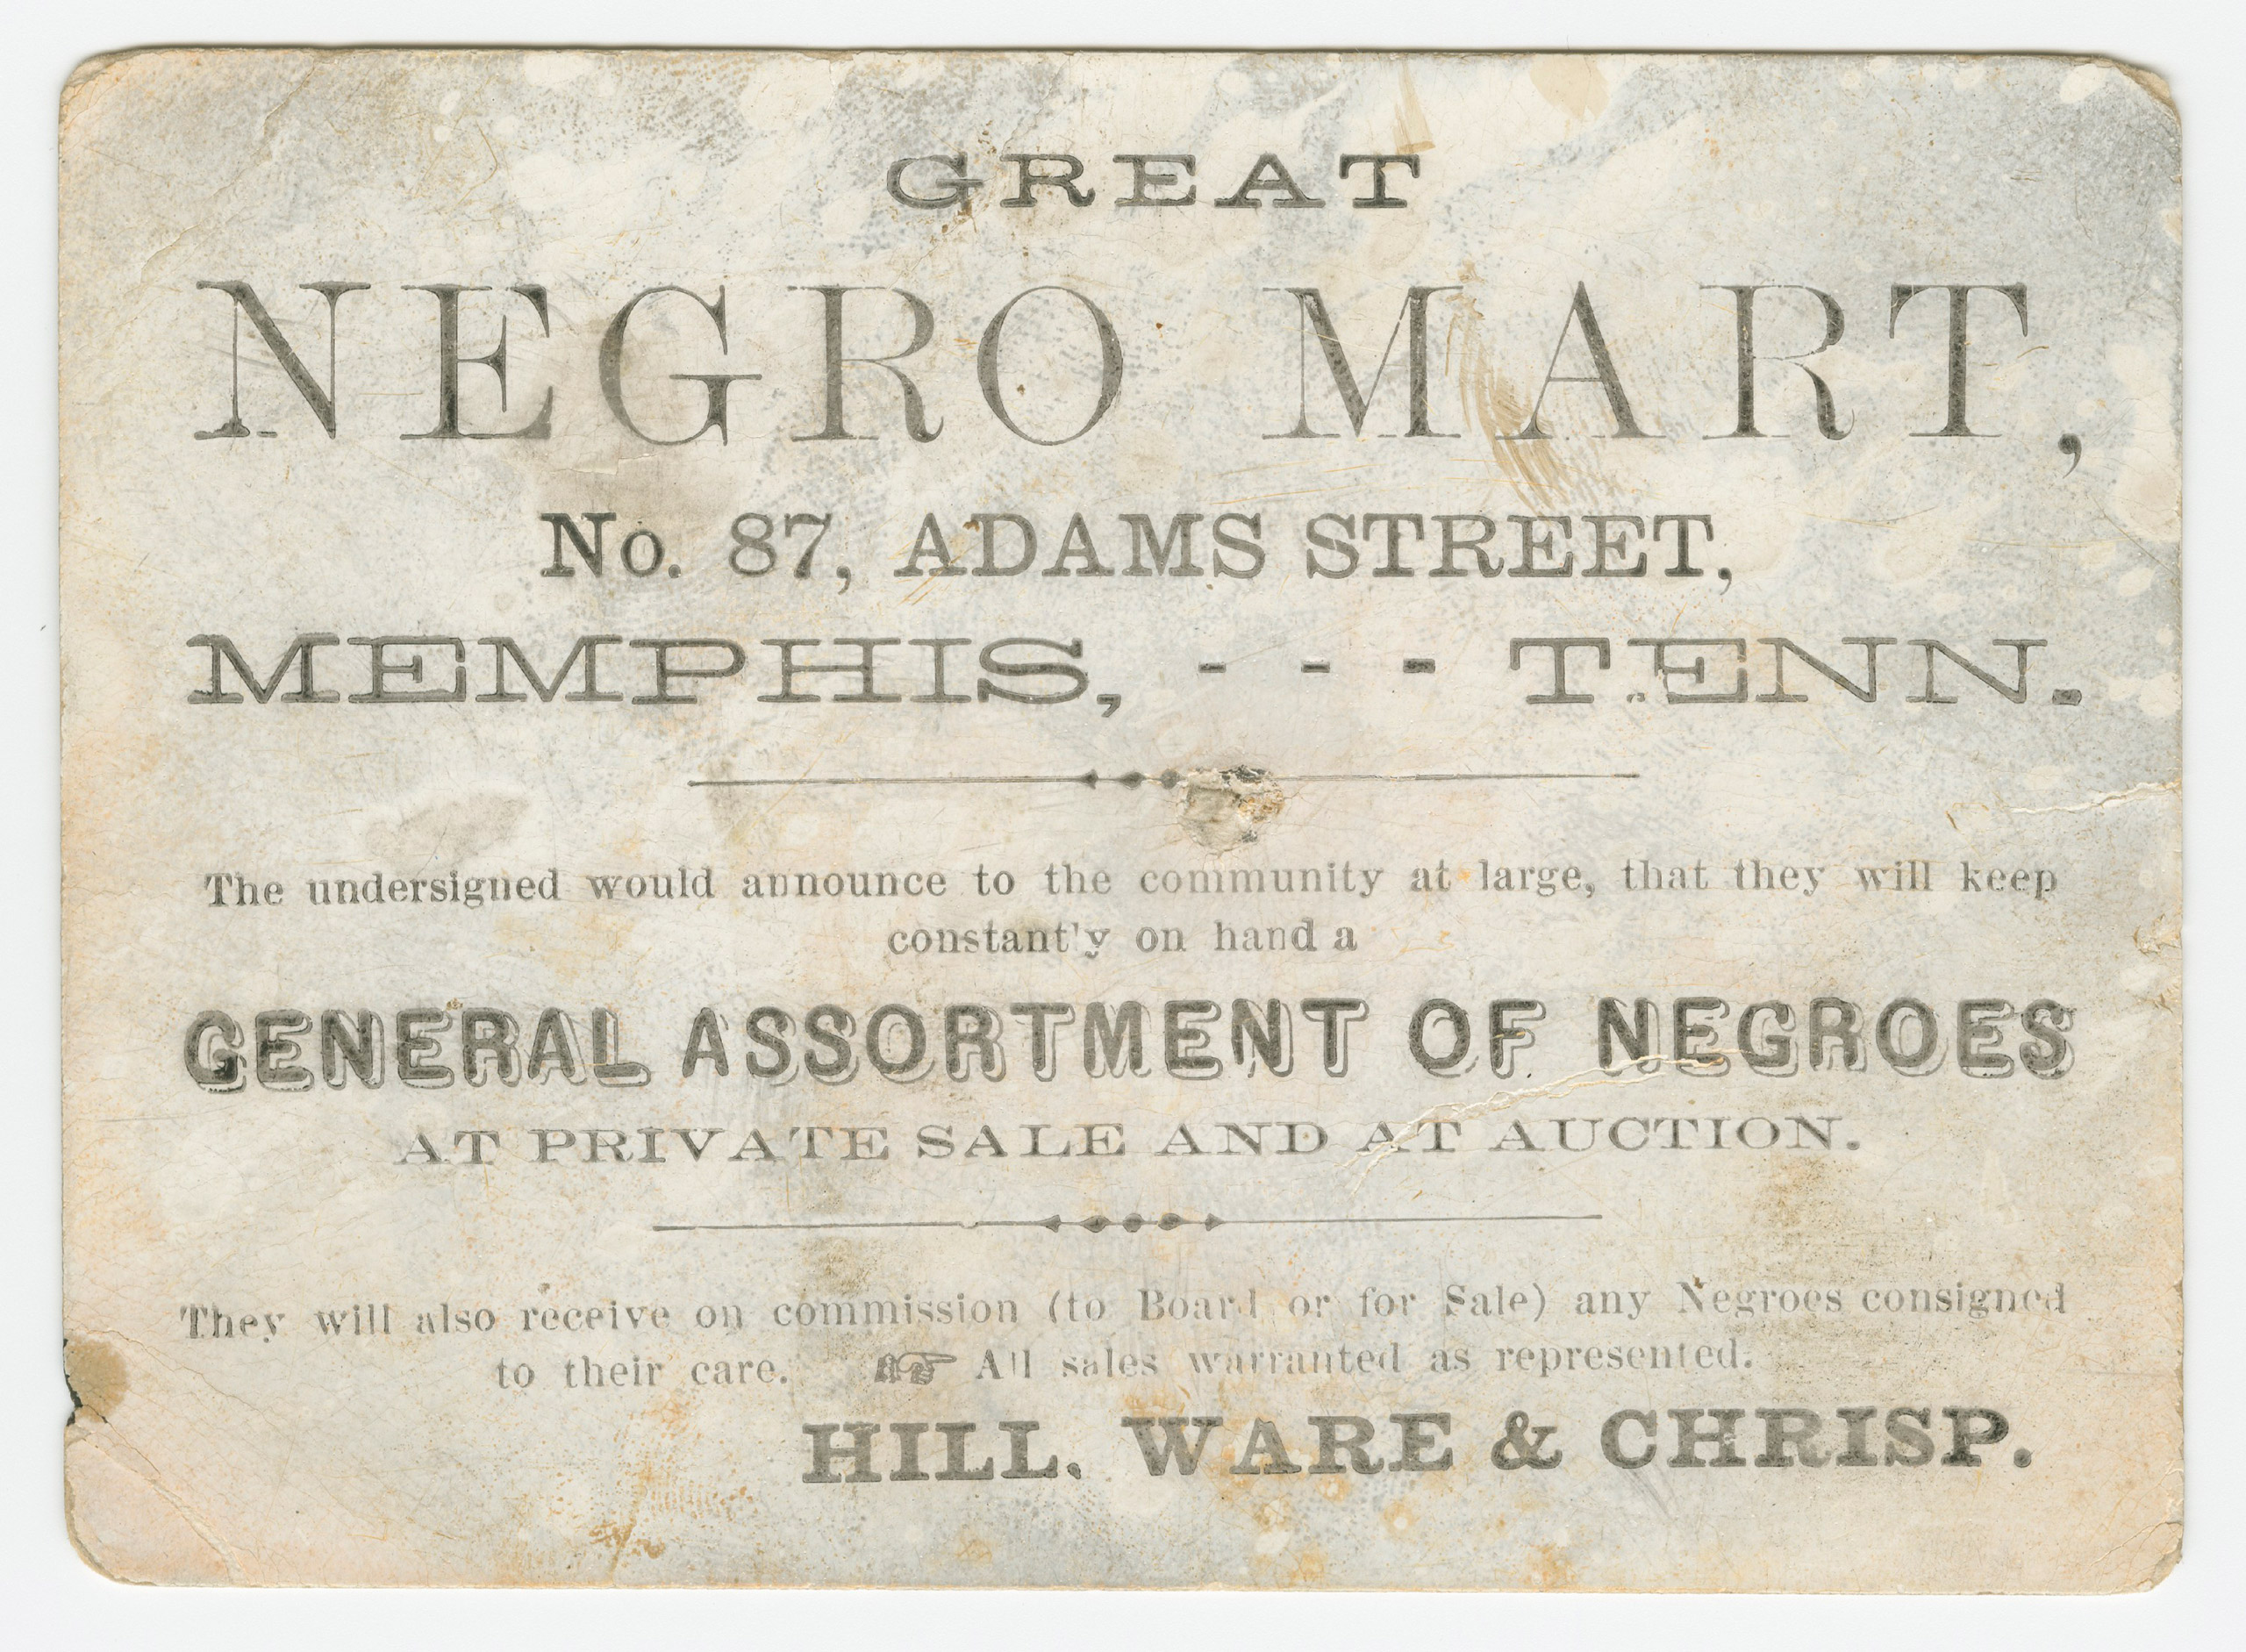 Advertisement card for the  Great Negro Mart  in Memphis, Tennessee, ca. 1859-1860.